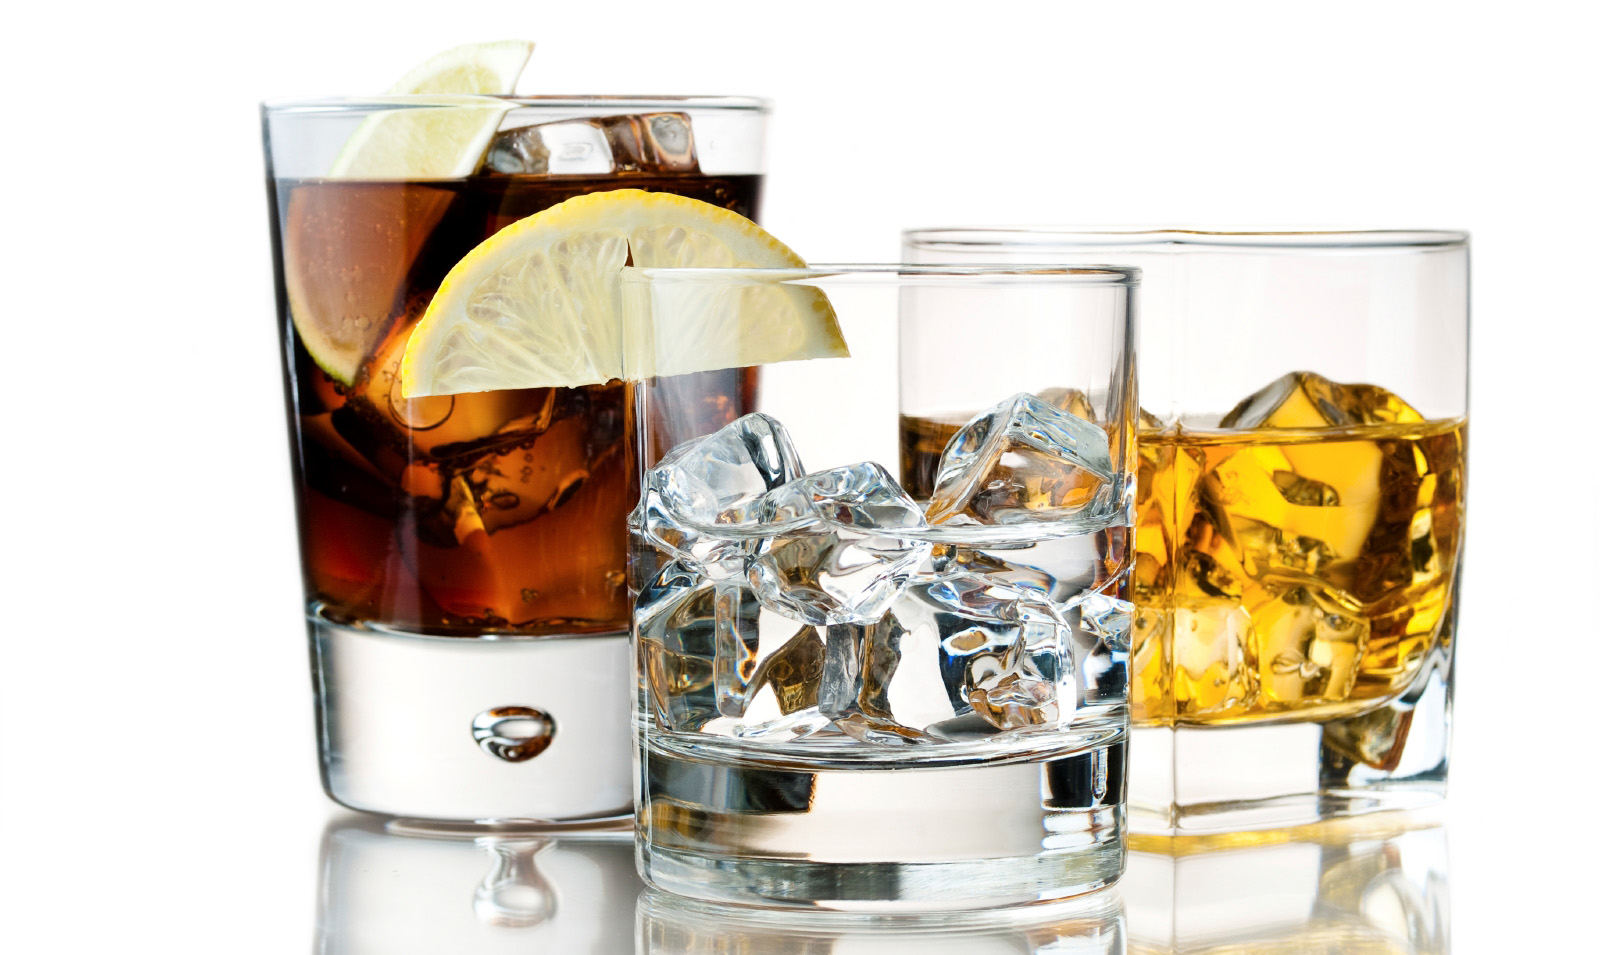 10 of the Strongest Alcohol Drinks and Where to Buy Them